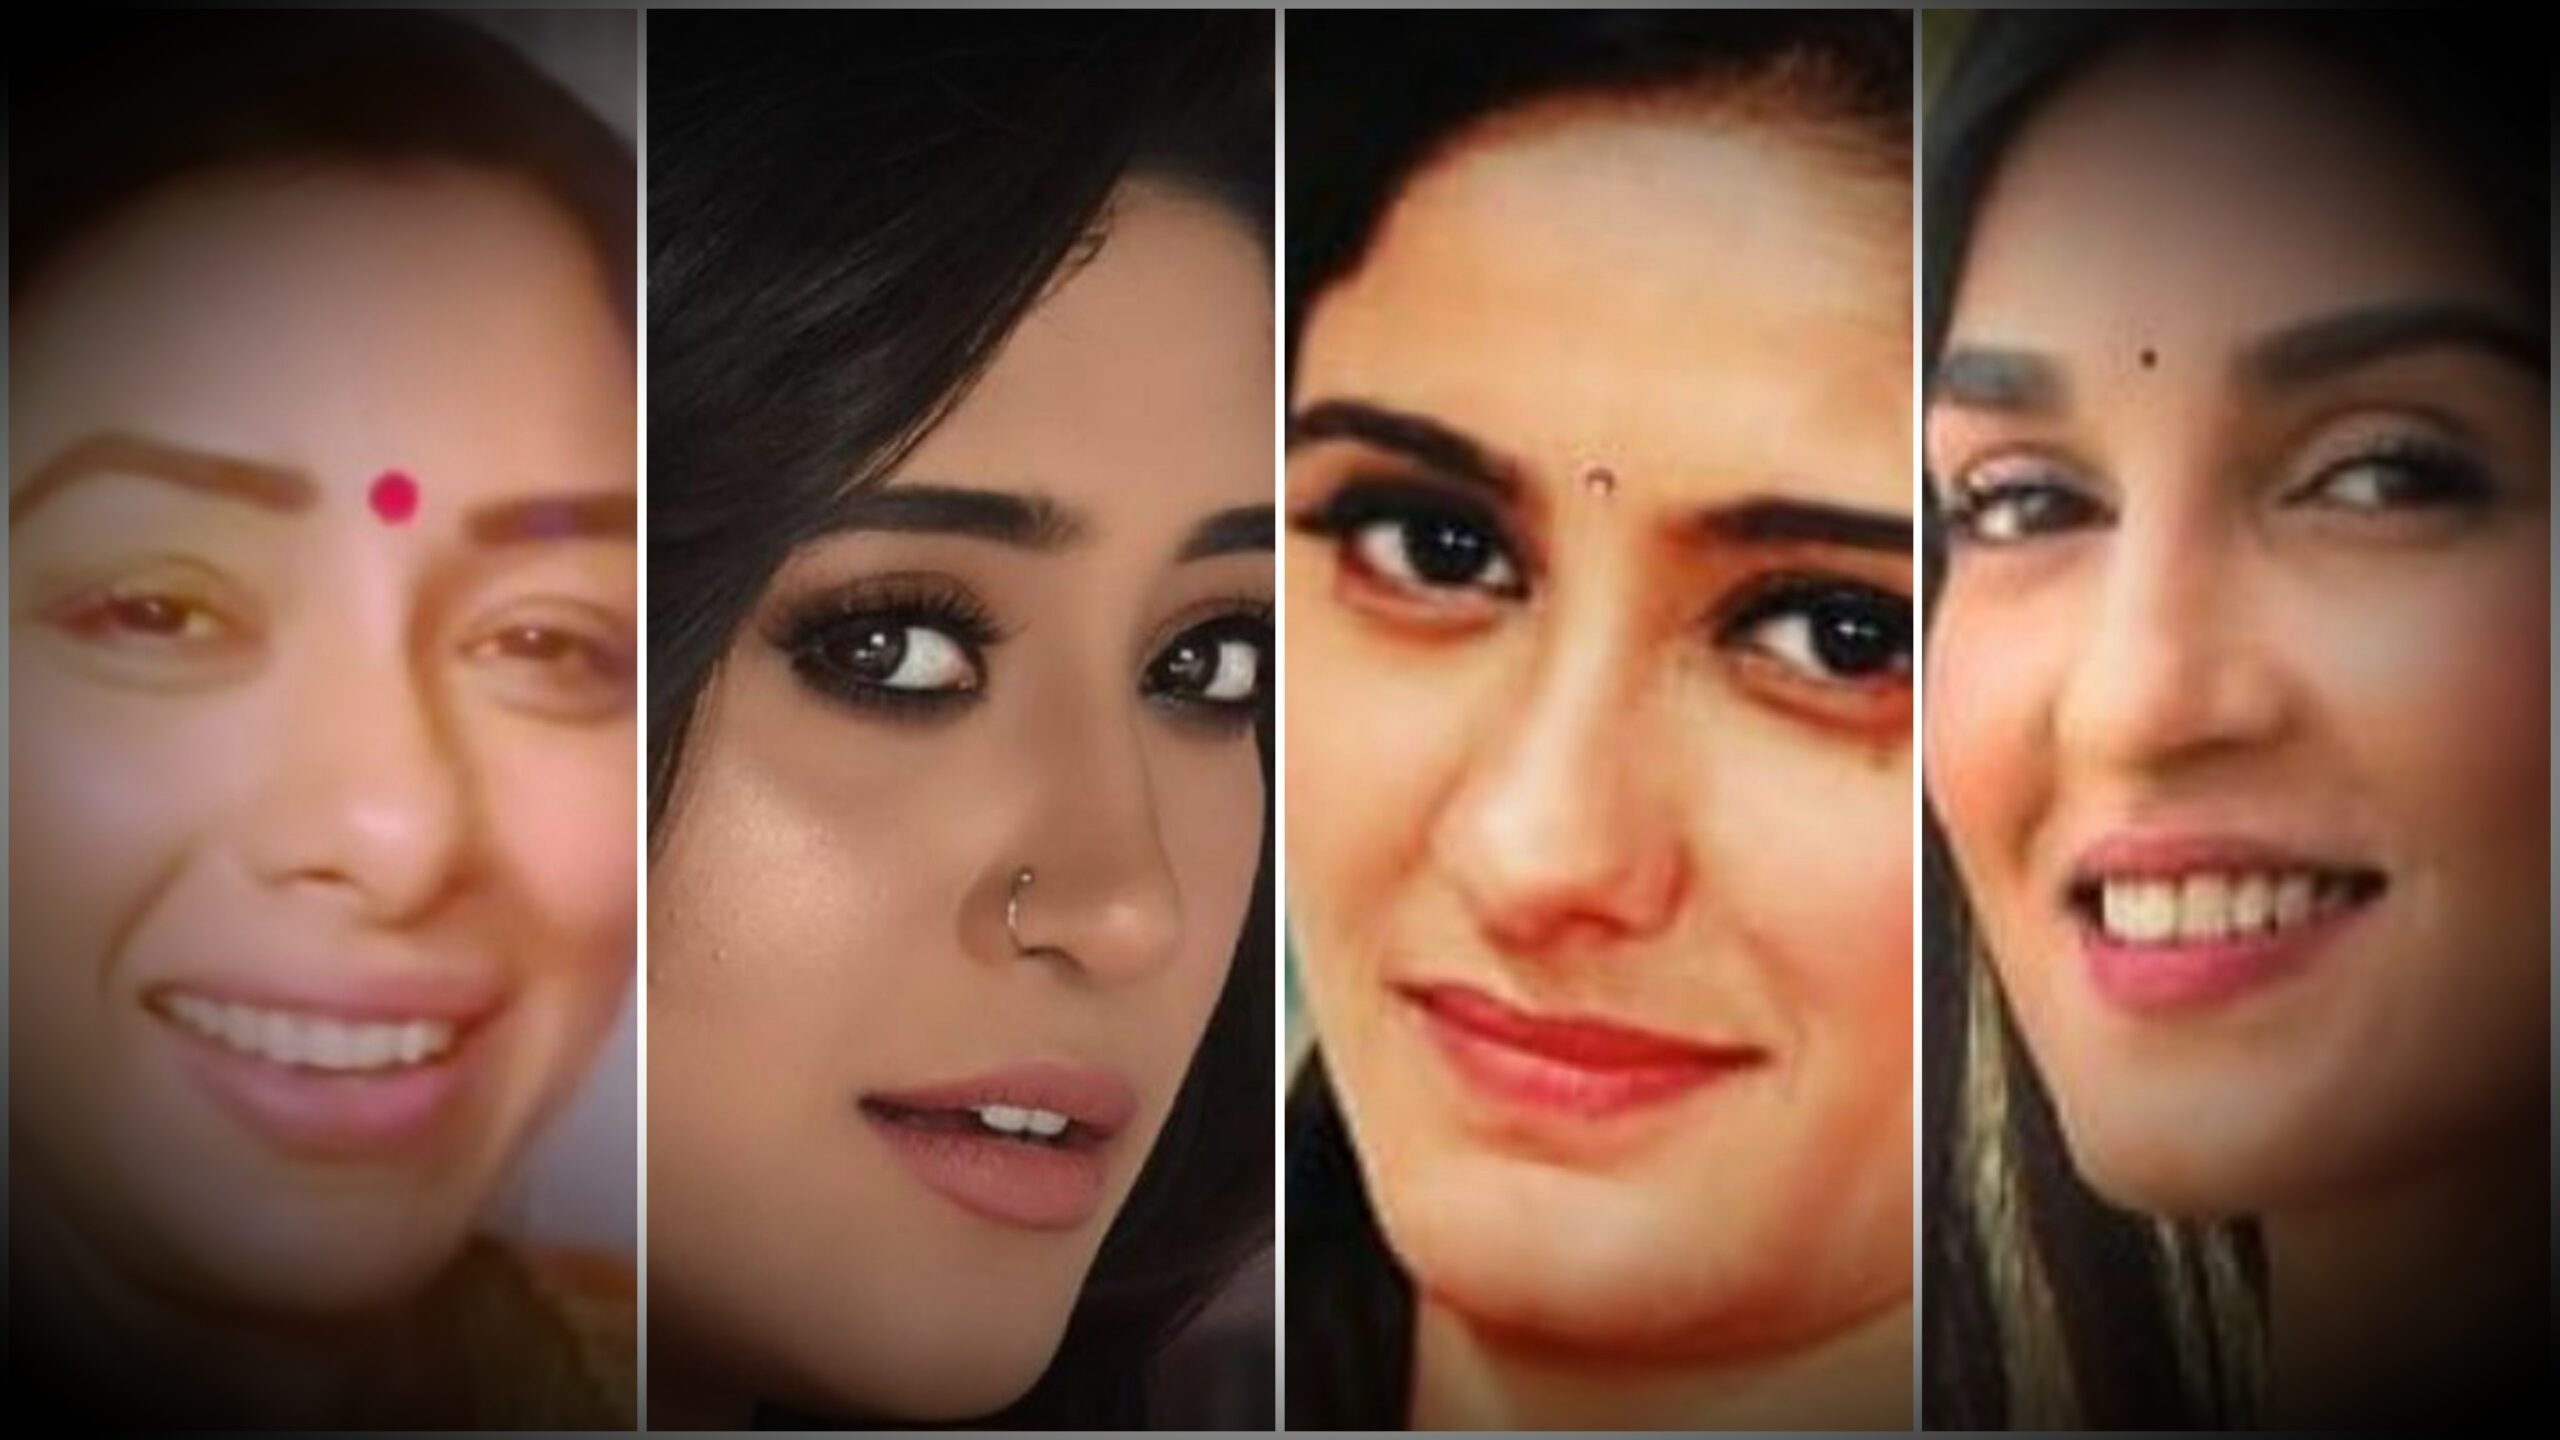 Shivangi Joshi maintained her lead, Ayesha Singh improved to second, Rupali Ganguly dropped to 3rd, and Shiny Doshi is the new entry